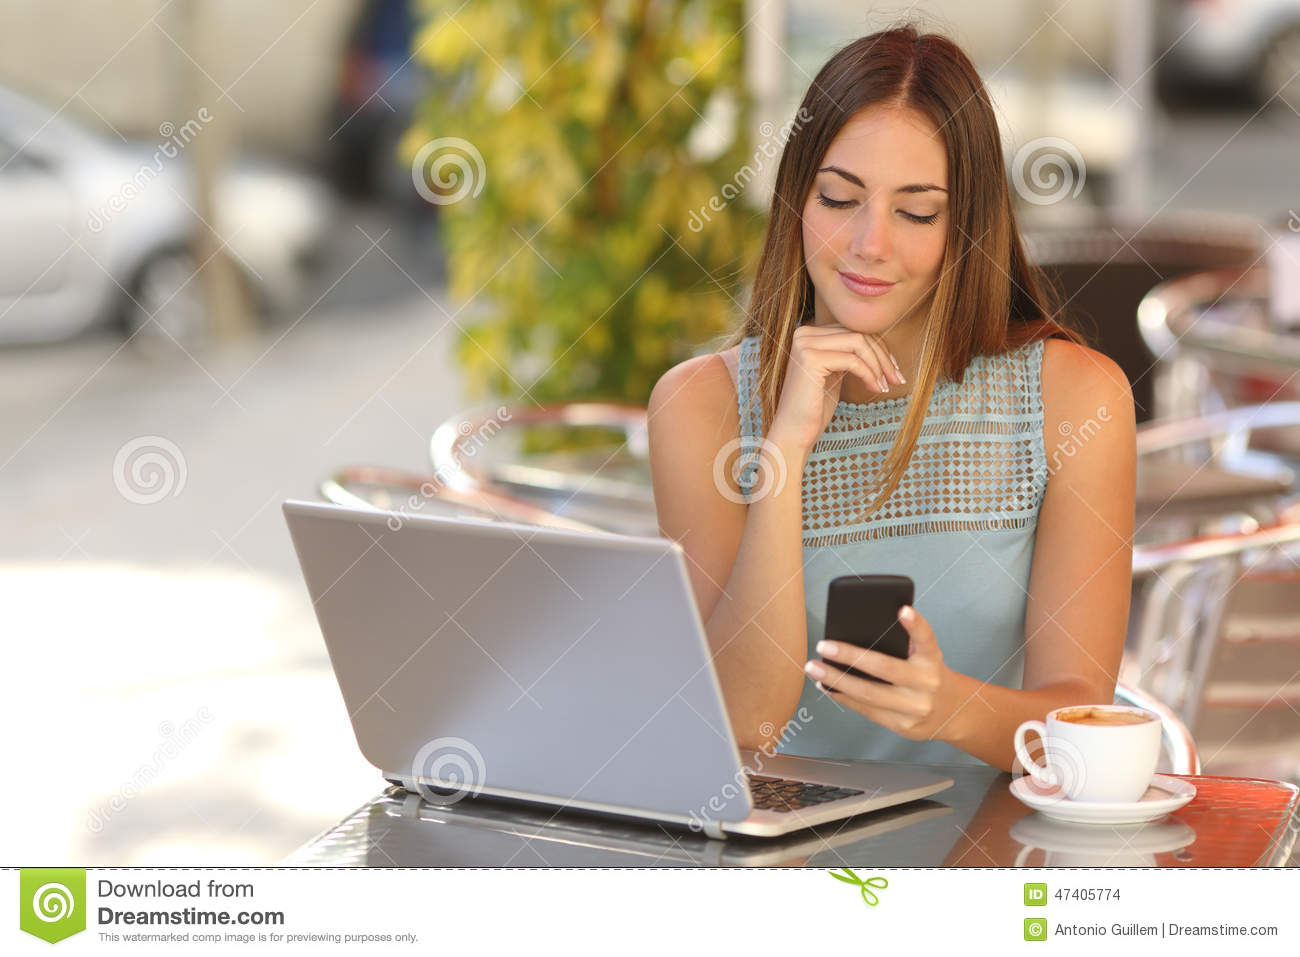 Self Employed Woman Working With Her Phone And Laptop In A